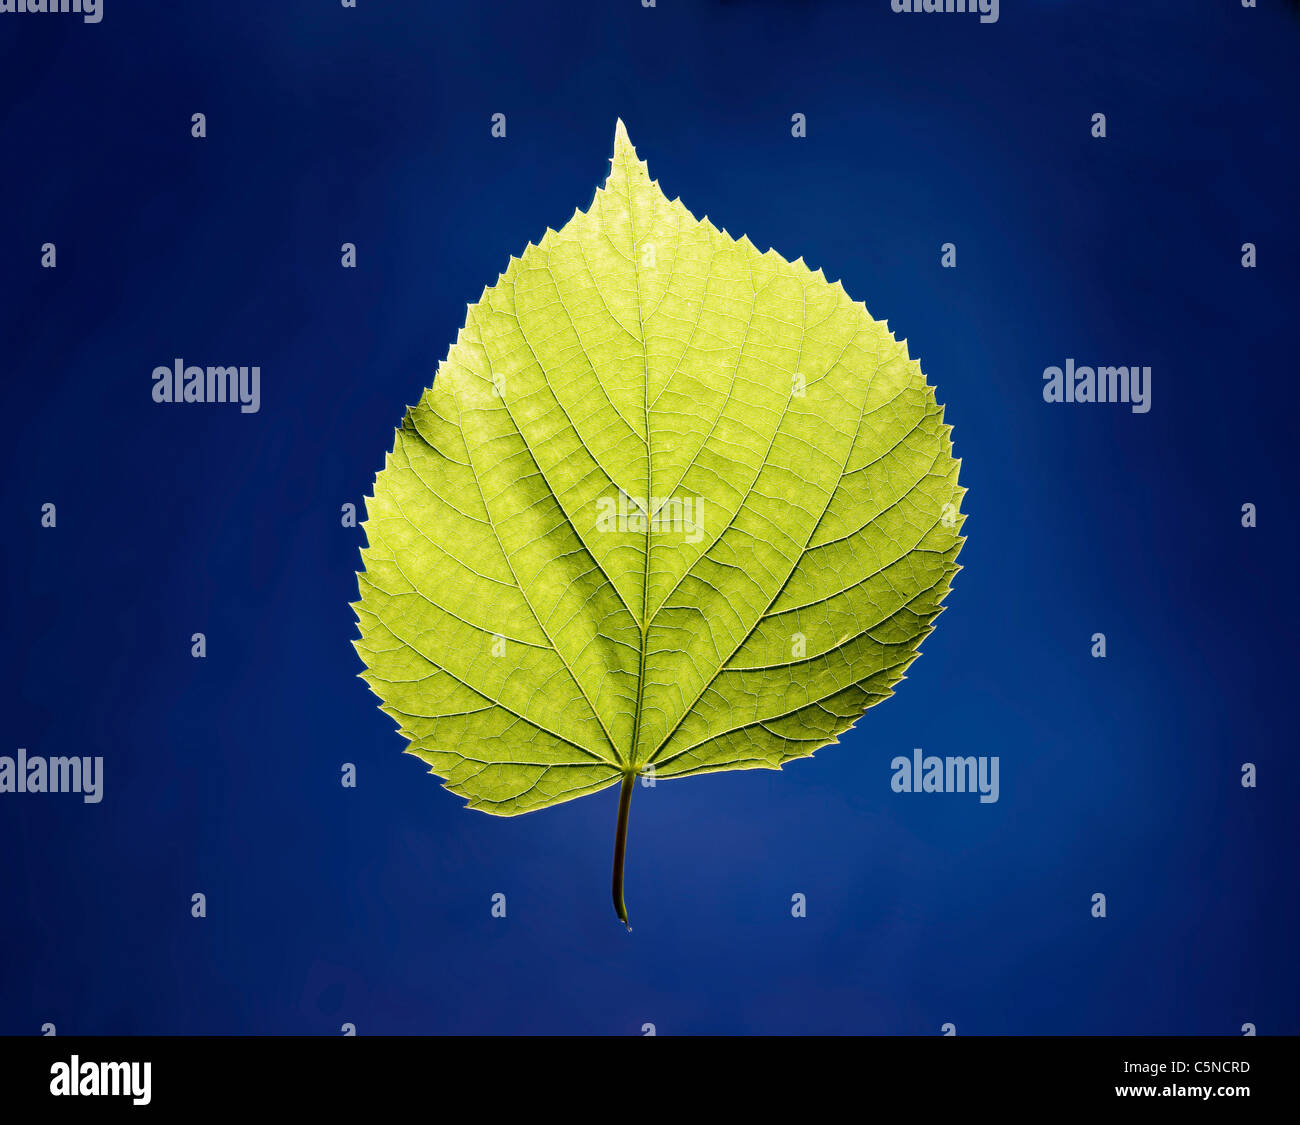 A green leaf on a blue surface Stock Photo